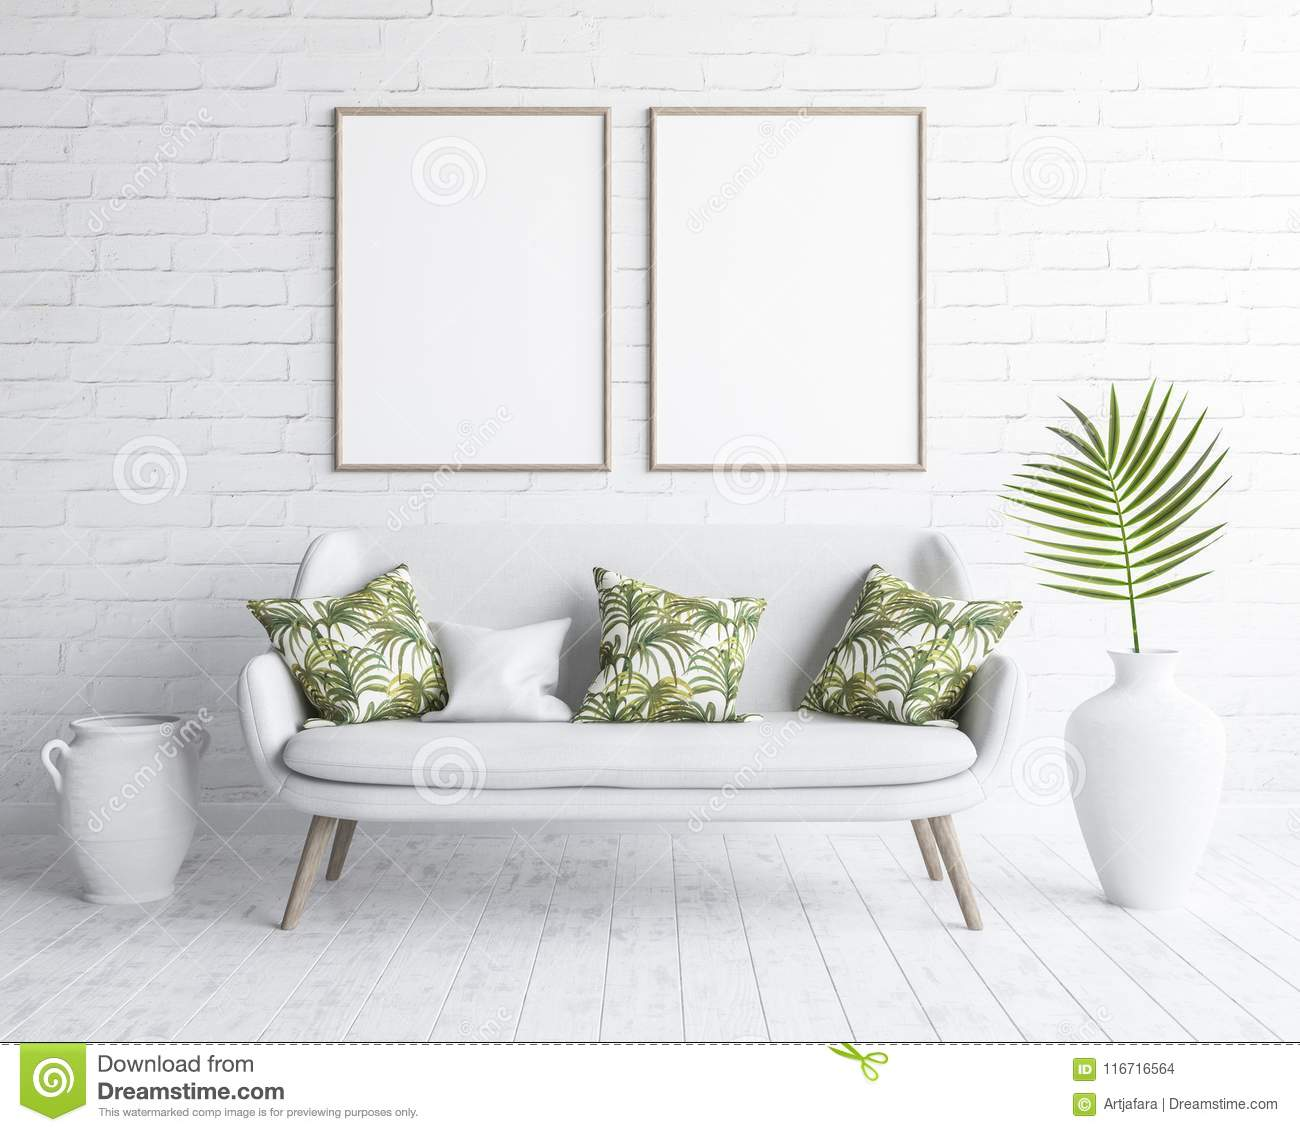 Mock Up Frames In Living Room Interior With White Sofa On White Brick Wall Scandinavian Style Stock Illustration Illustration Of Nordic Floor 116716564